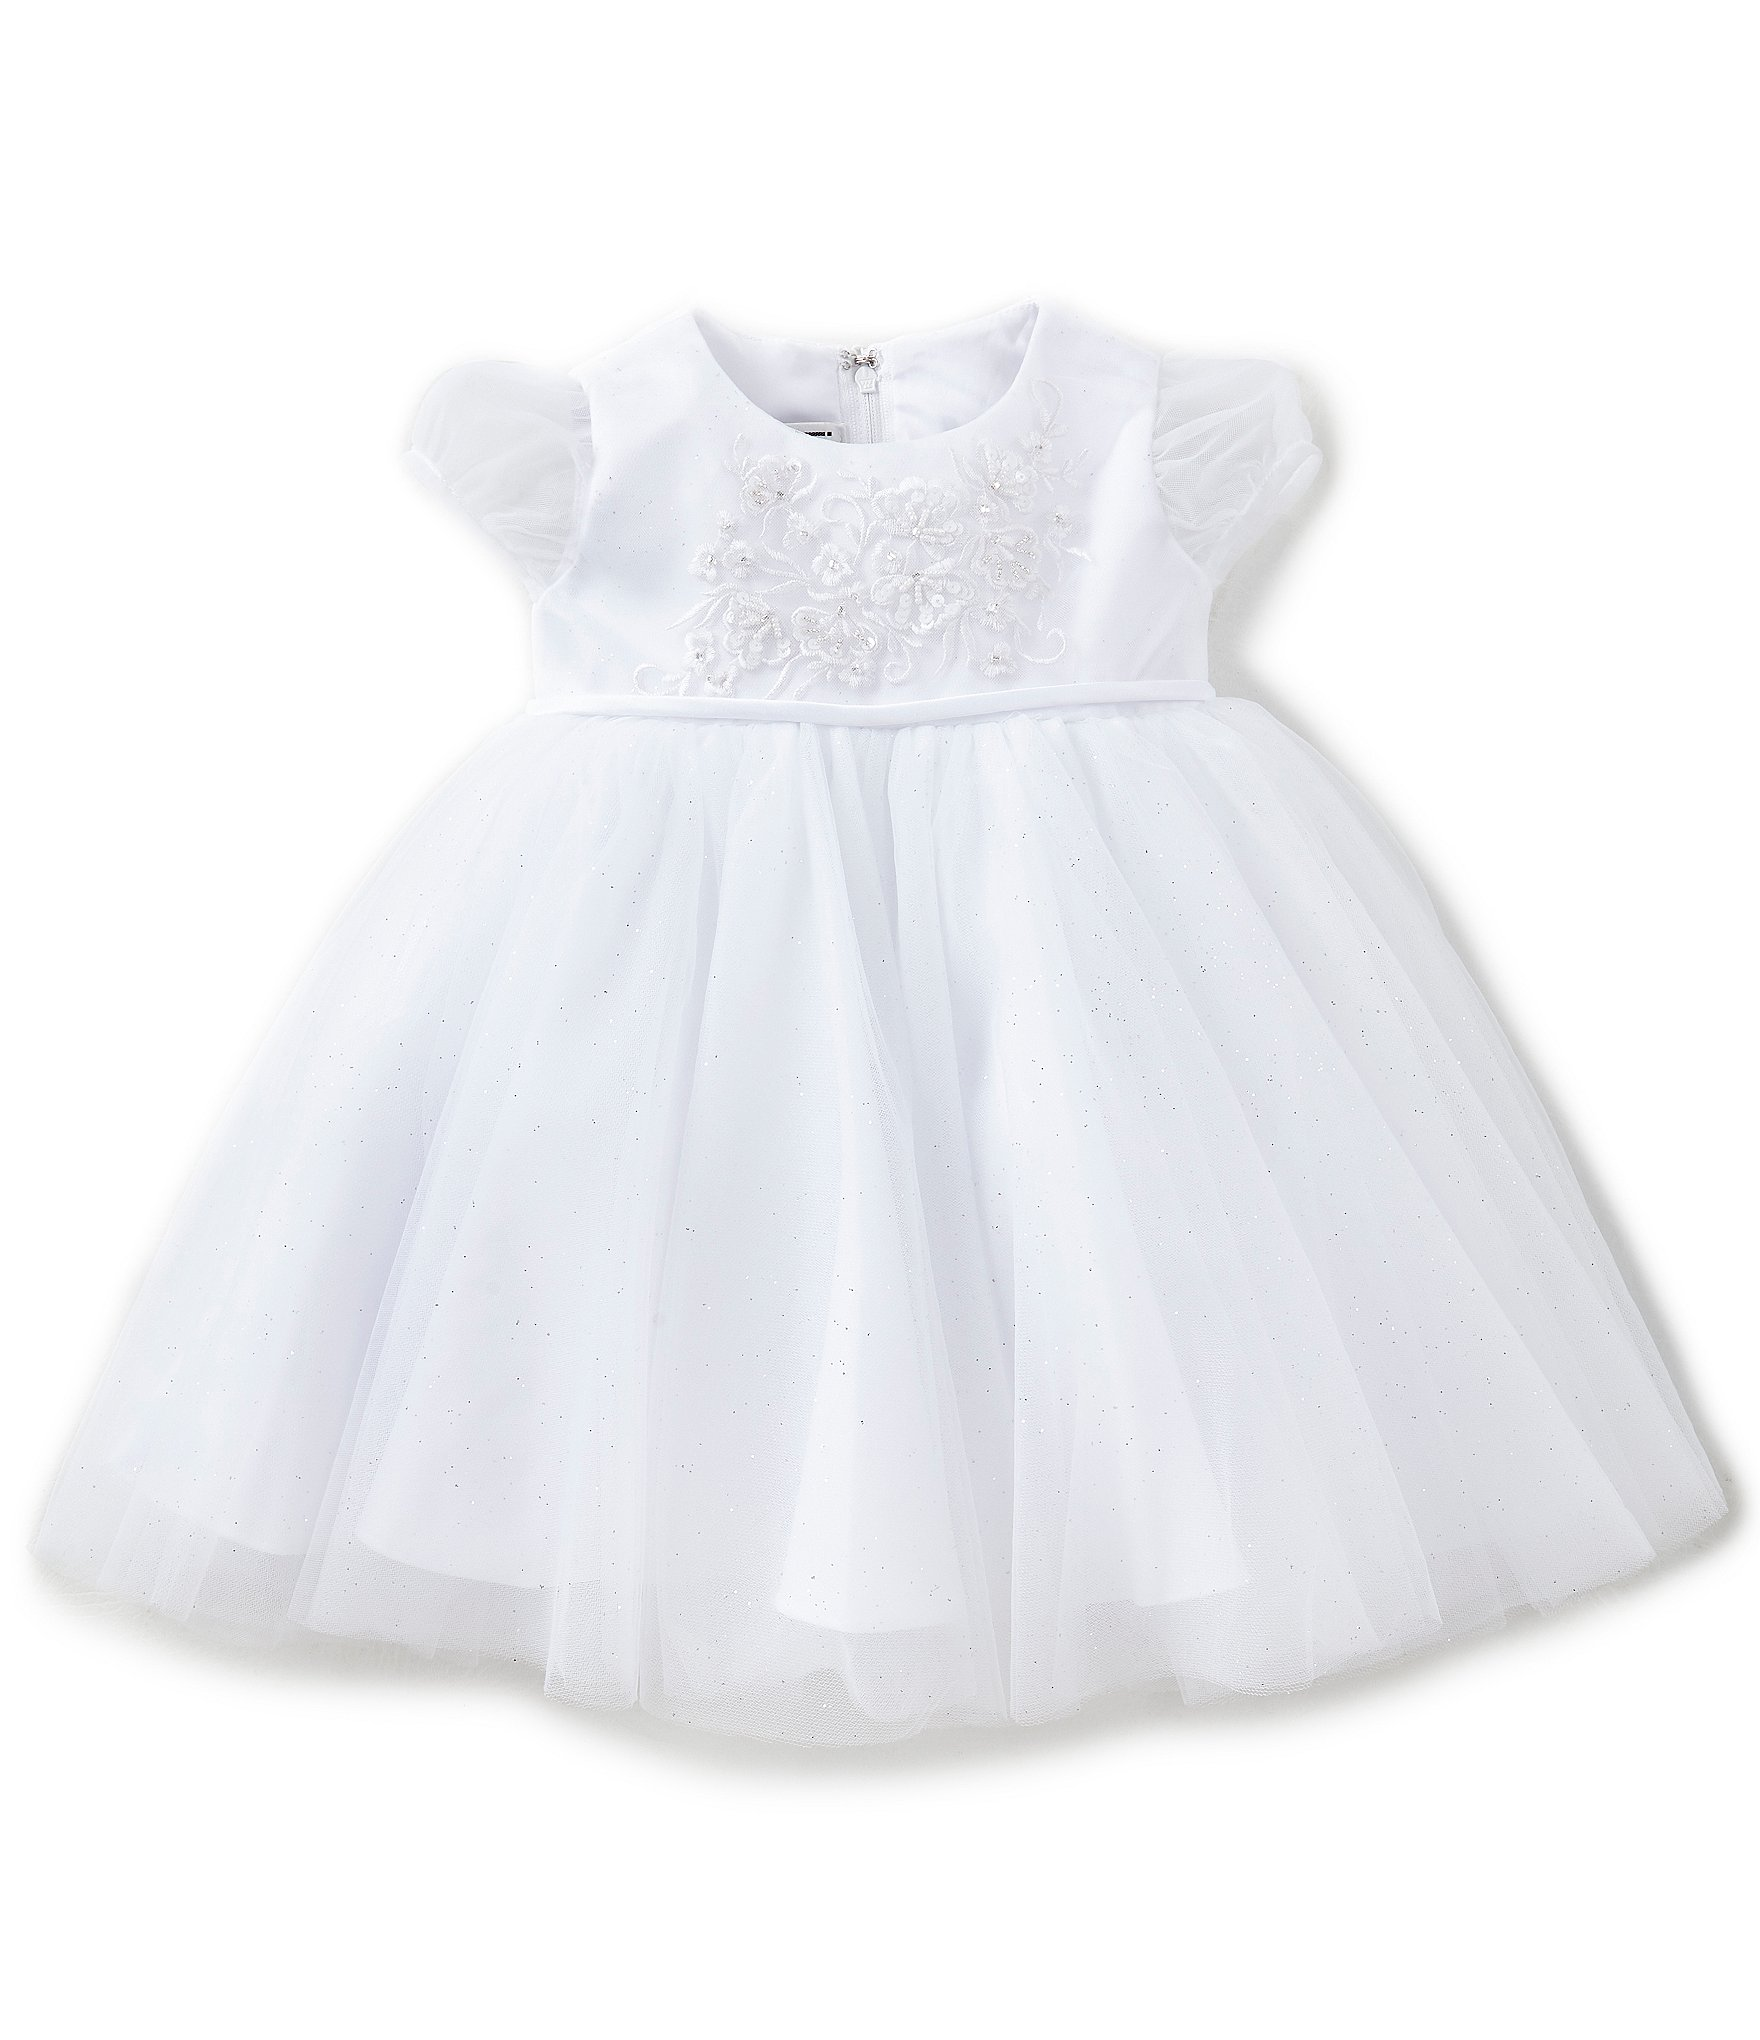 2bc77ad62 Limited Availability Grey Baby Girl Dresses